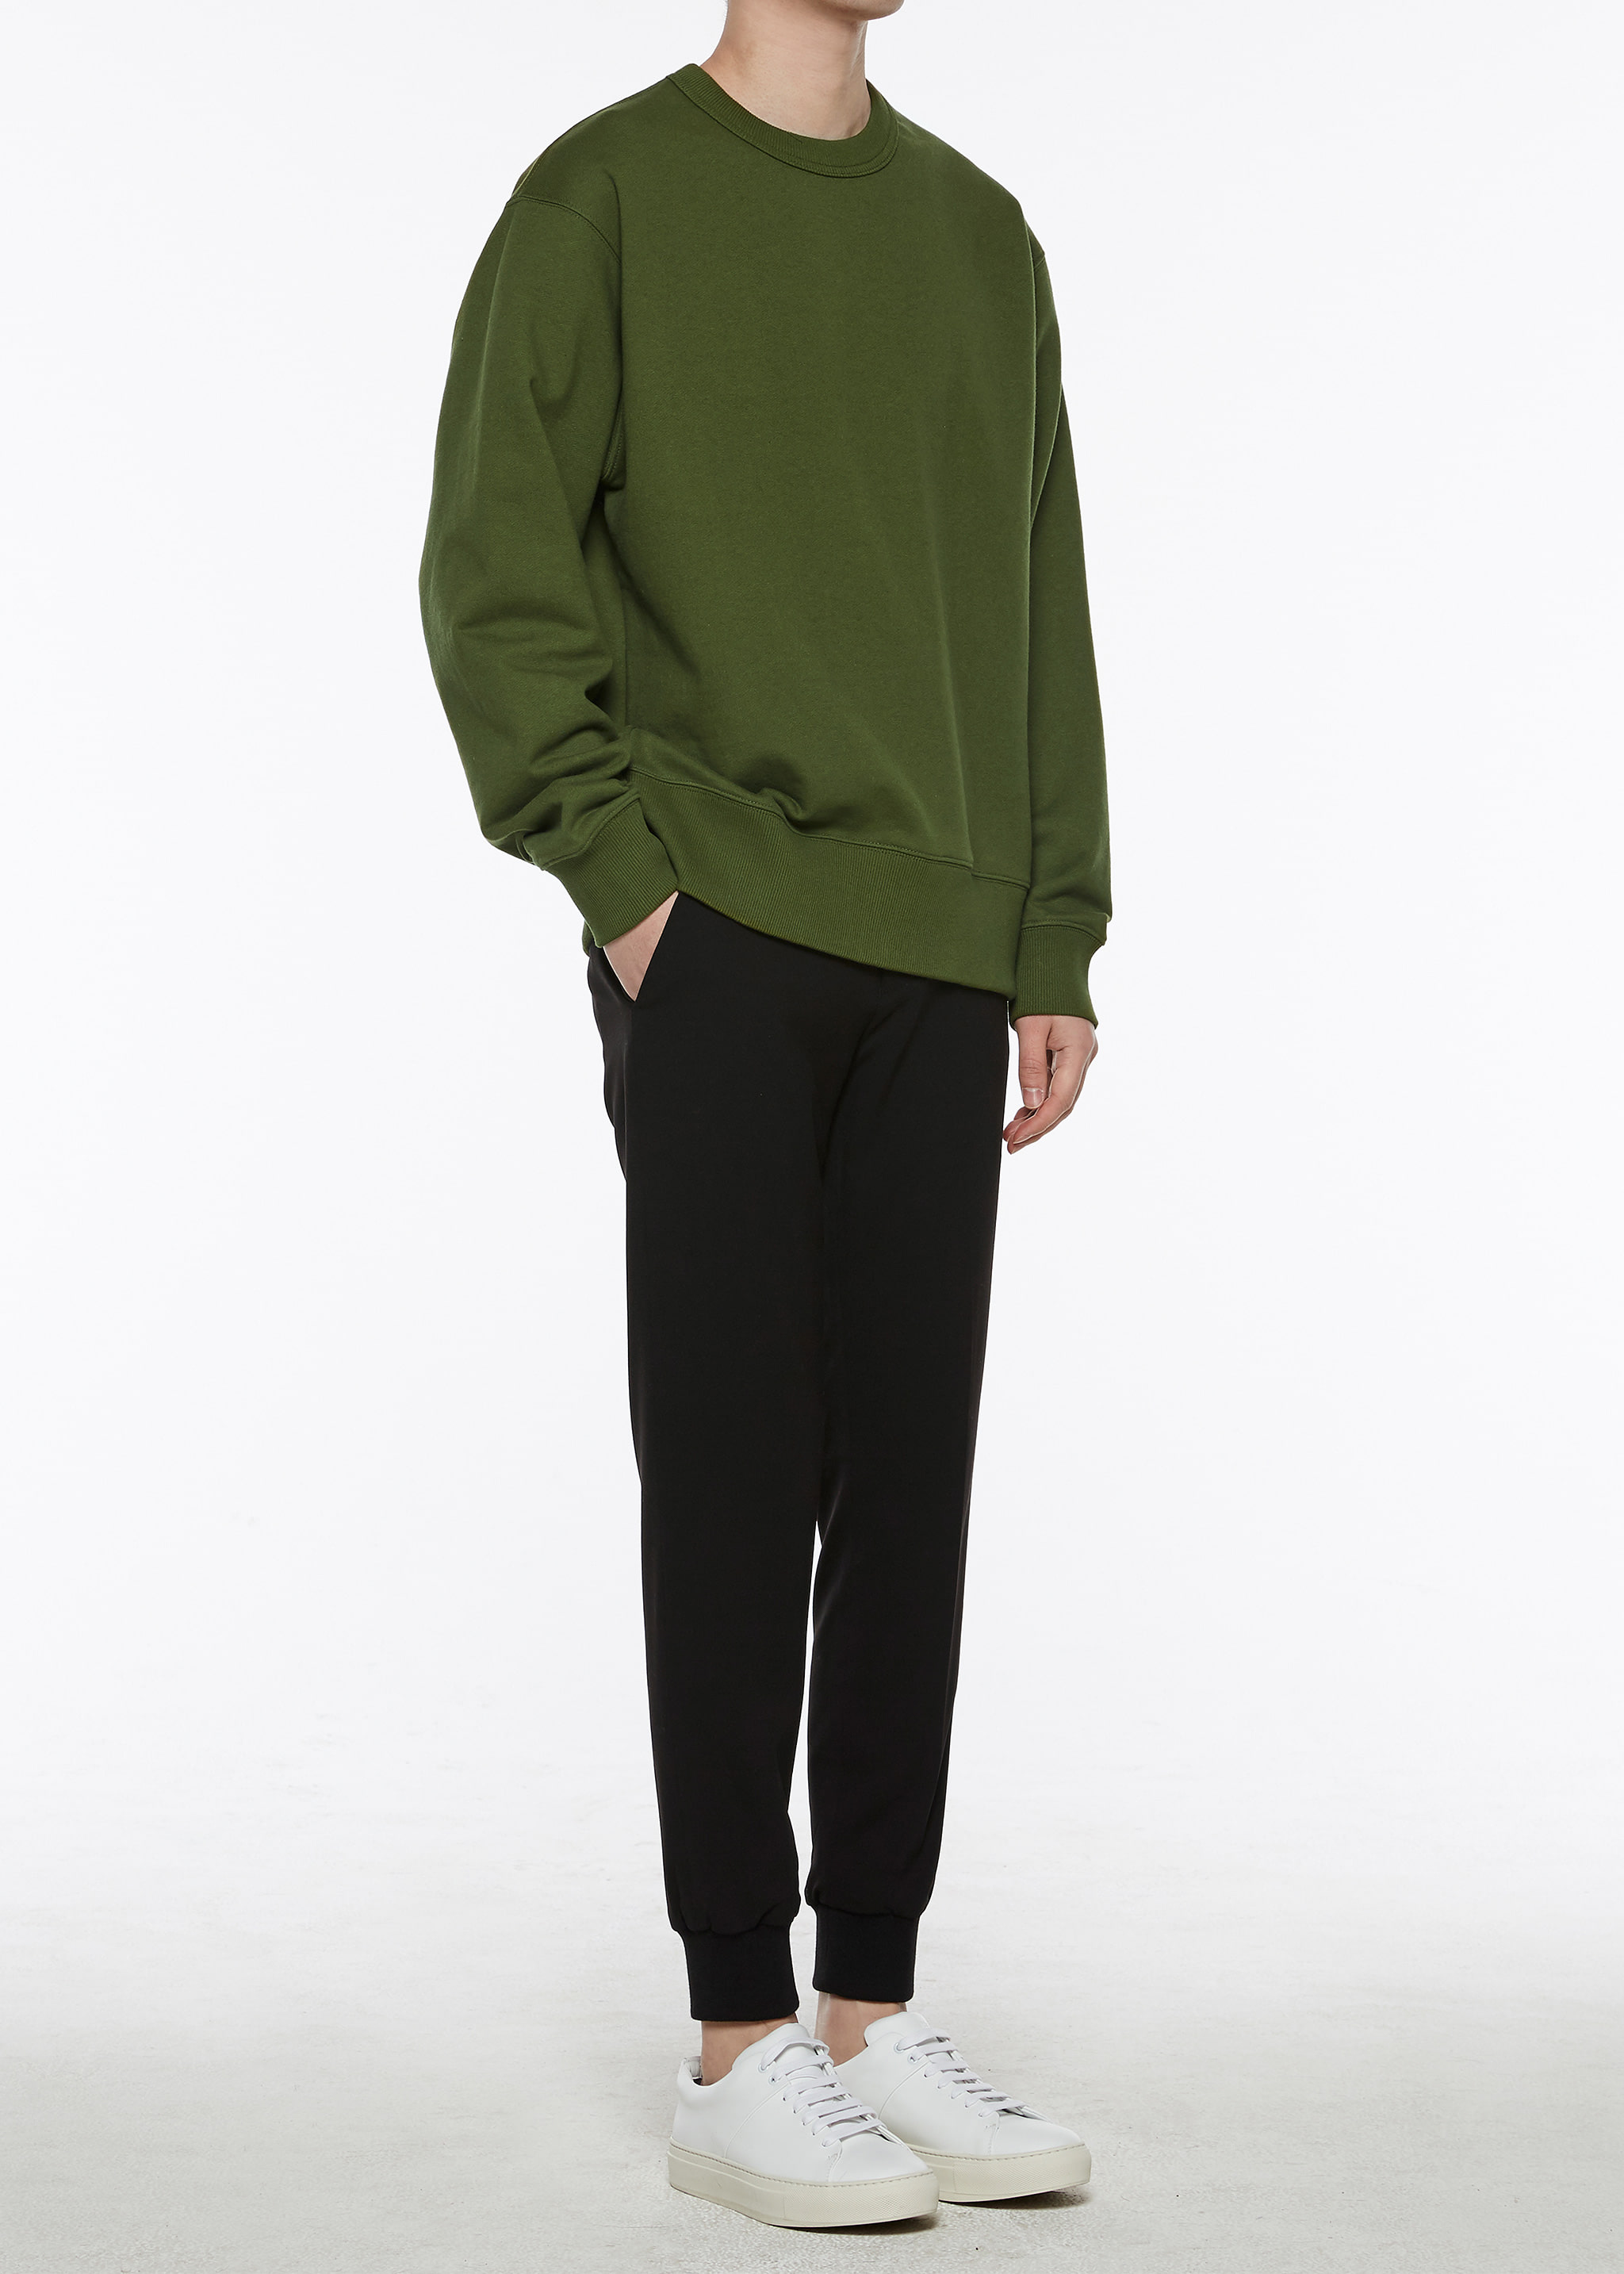 Errday Sweatshirt (Juniper Green)재입고완료